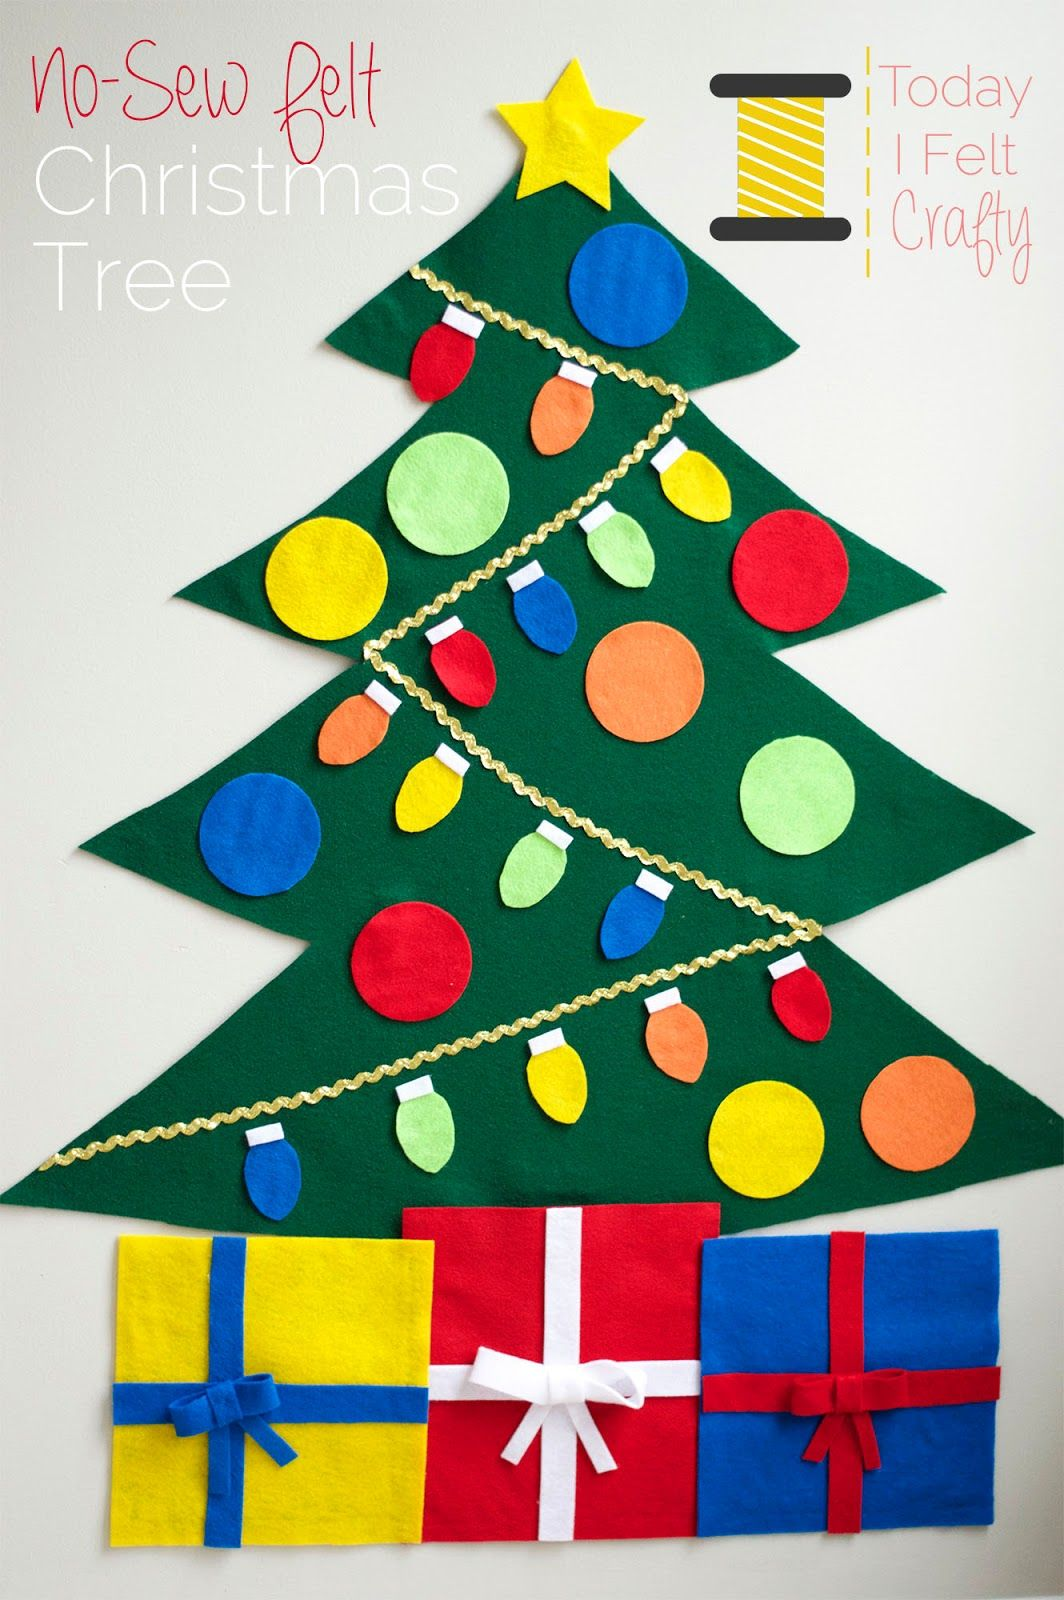 No-Sew Felt Christmas Tree - Tutorial & Free Pattern by Today I Felt ...